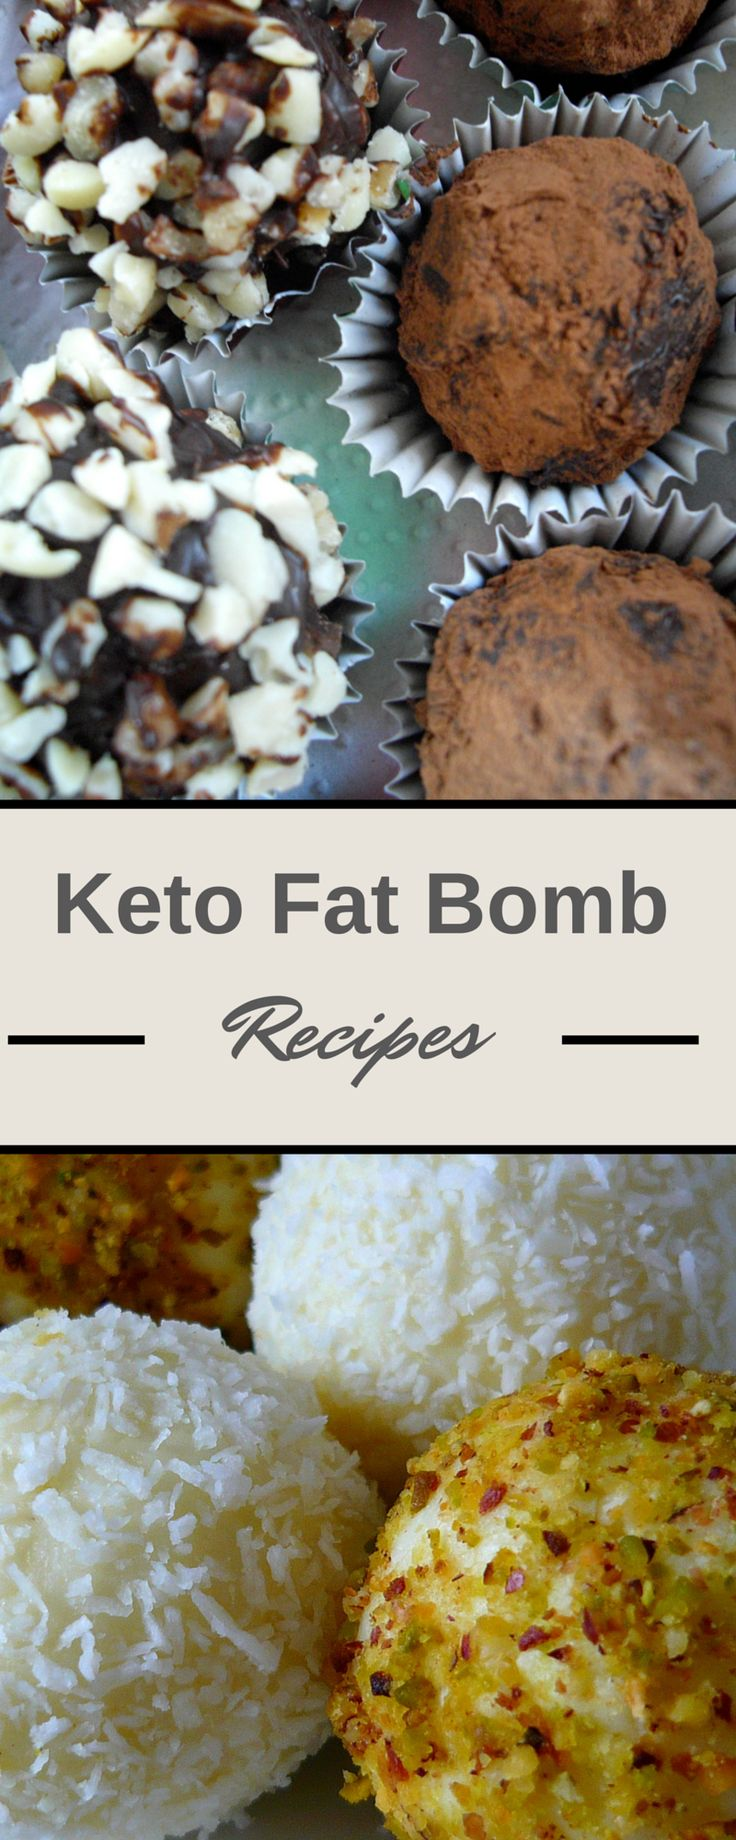 Keto Fat Bomb Recipes | Clean eating | Pinterest | The o'jays, Keto and Stevia